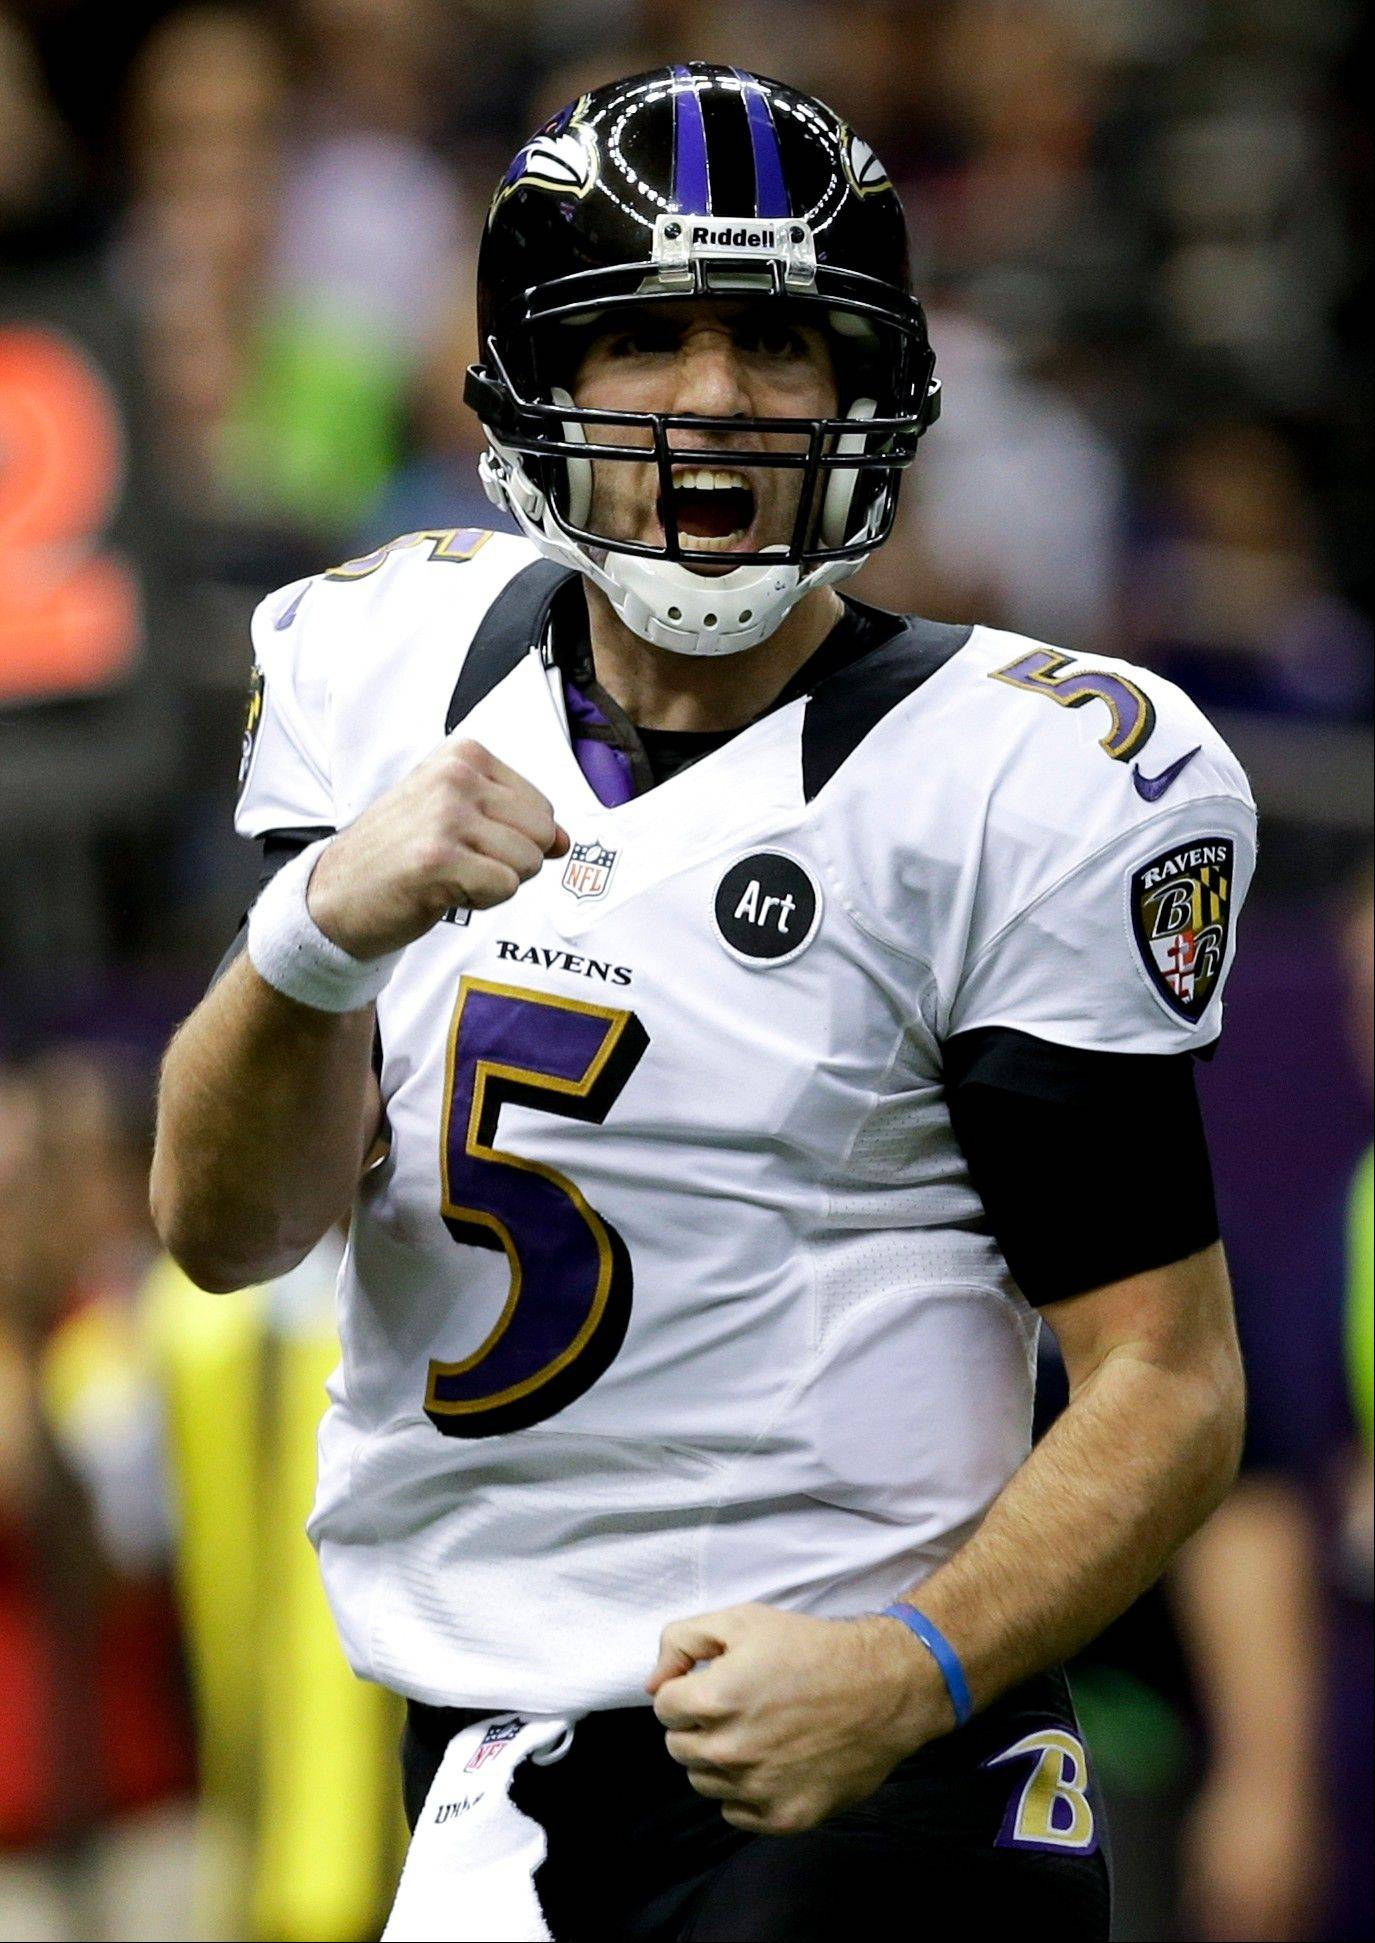 Baltimore Ravens quarterback Joe Flacco has led his team to five straight playoff berths and now has a Super Bowl title to his credit, yet some analysts don't believe he's an elite NFL quarterback.